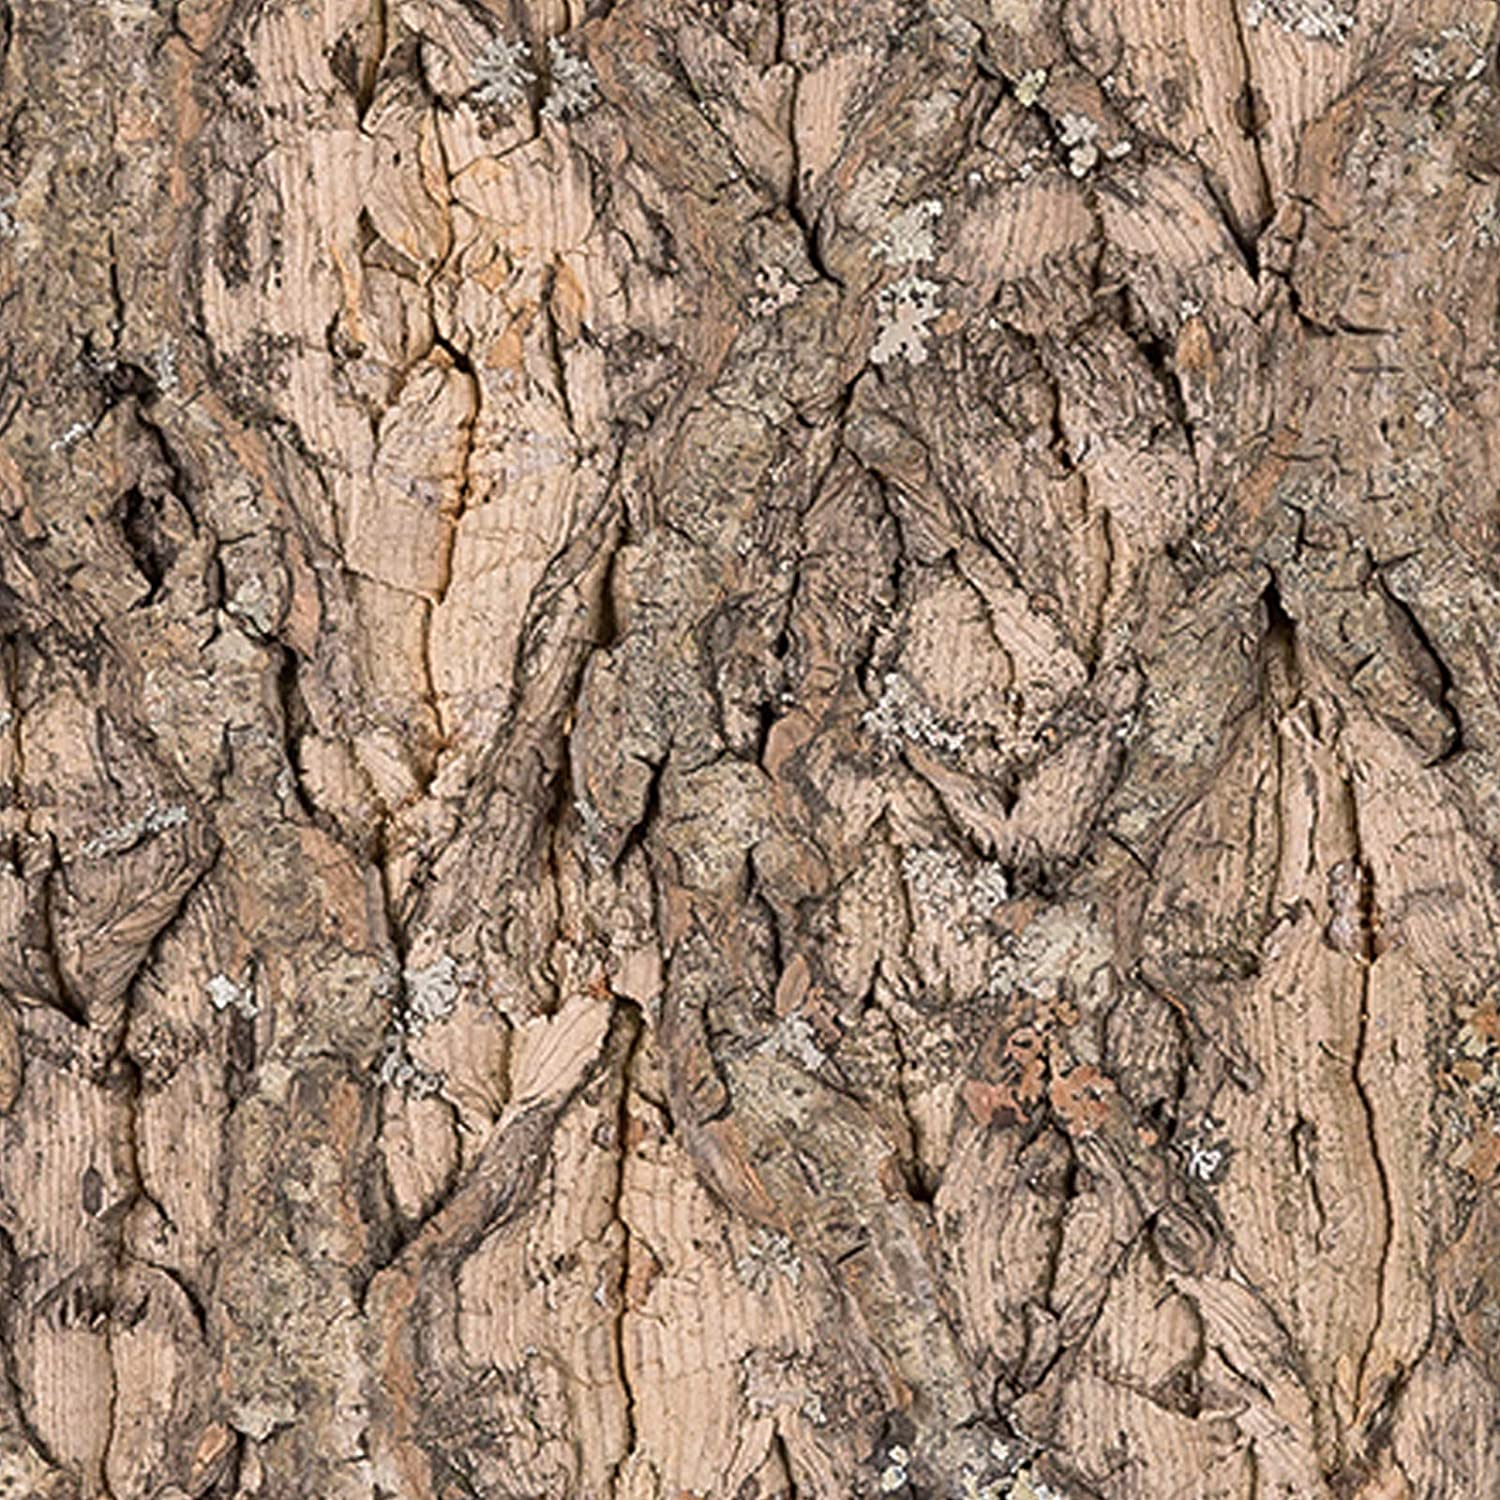 Reptile Natural Looking Cork Background 20 x 15cm